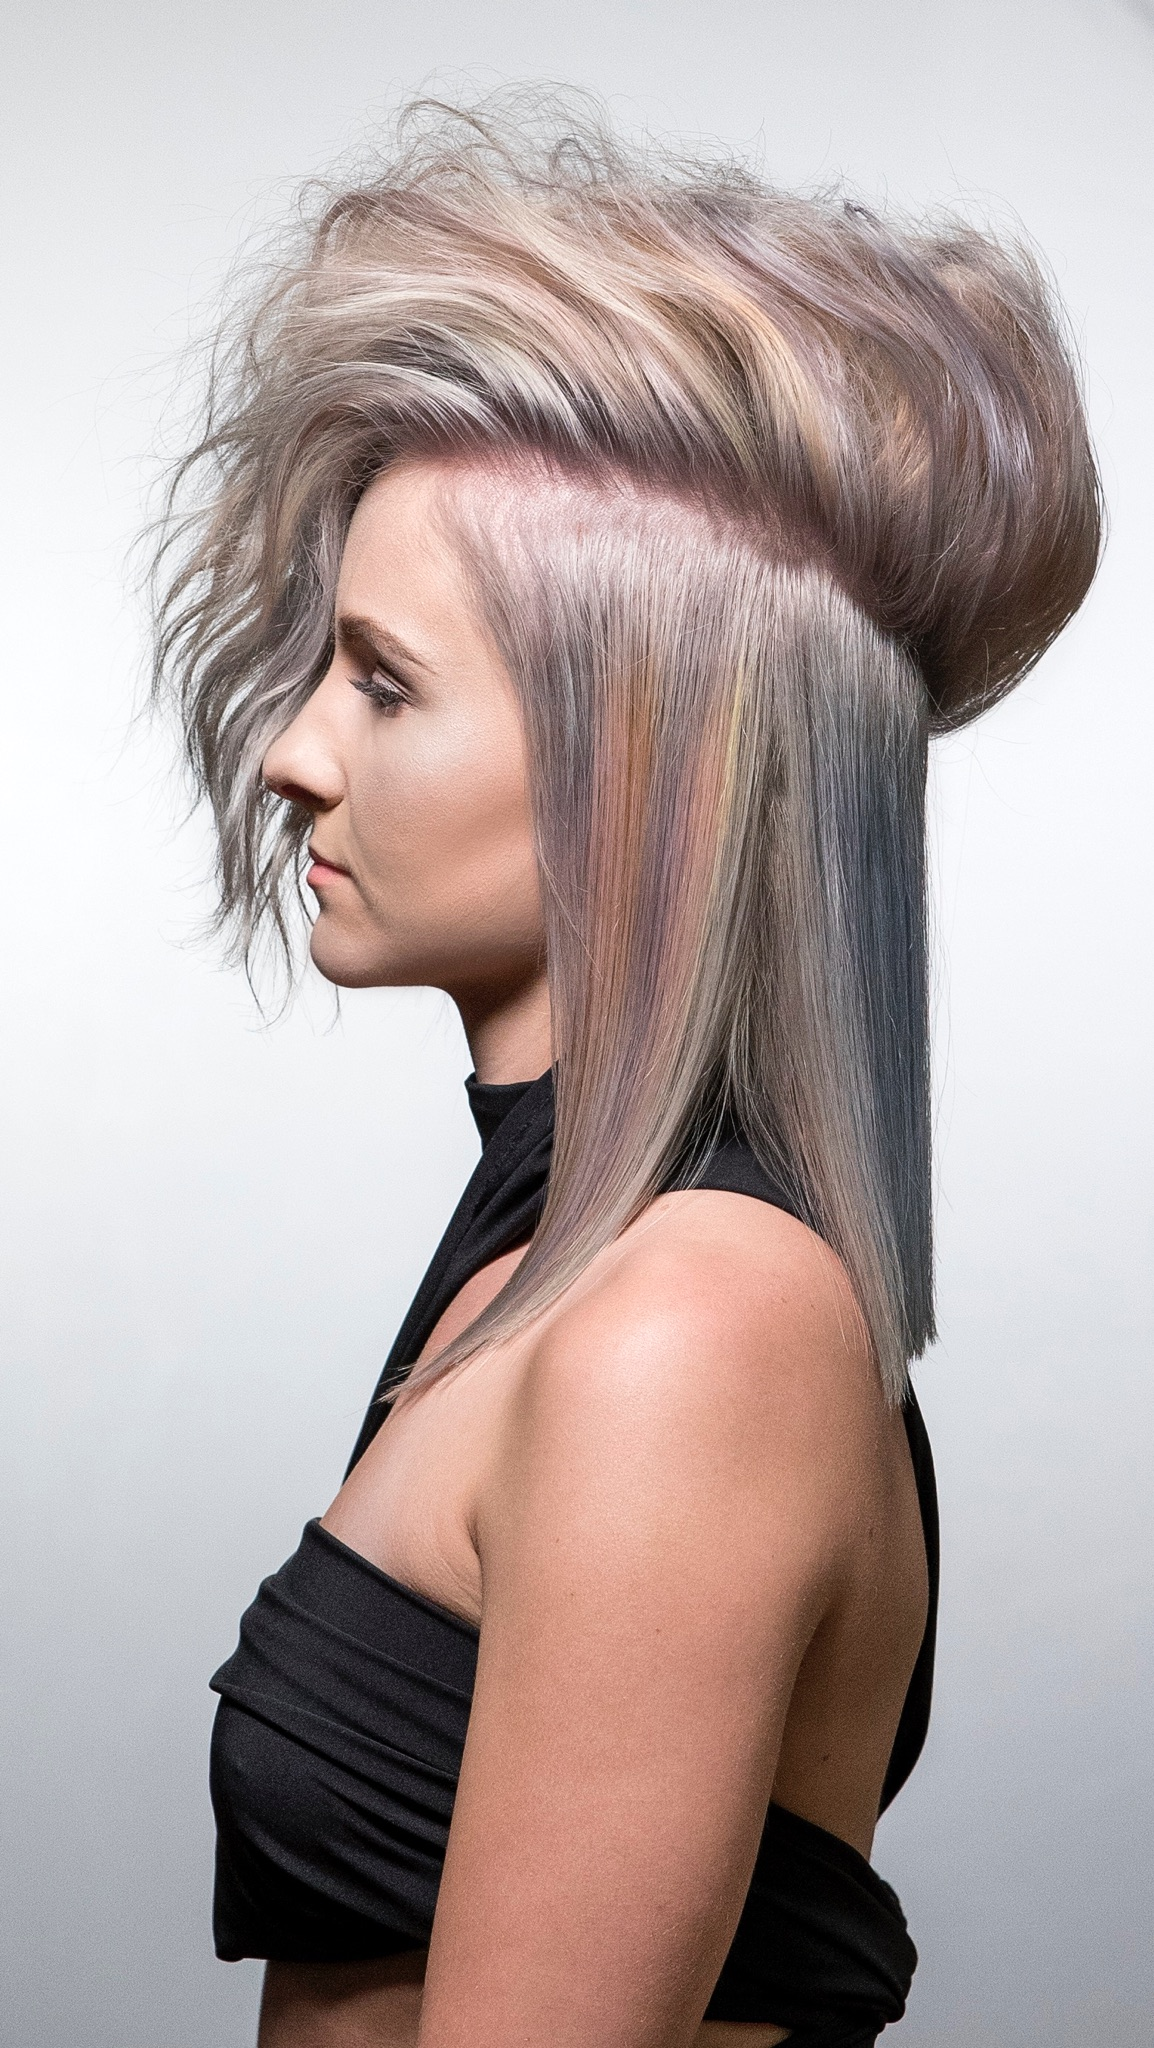 - Style and color by Aspen Johnson.